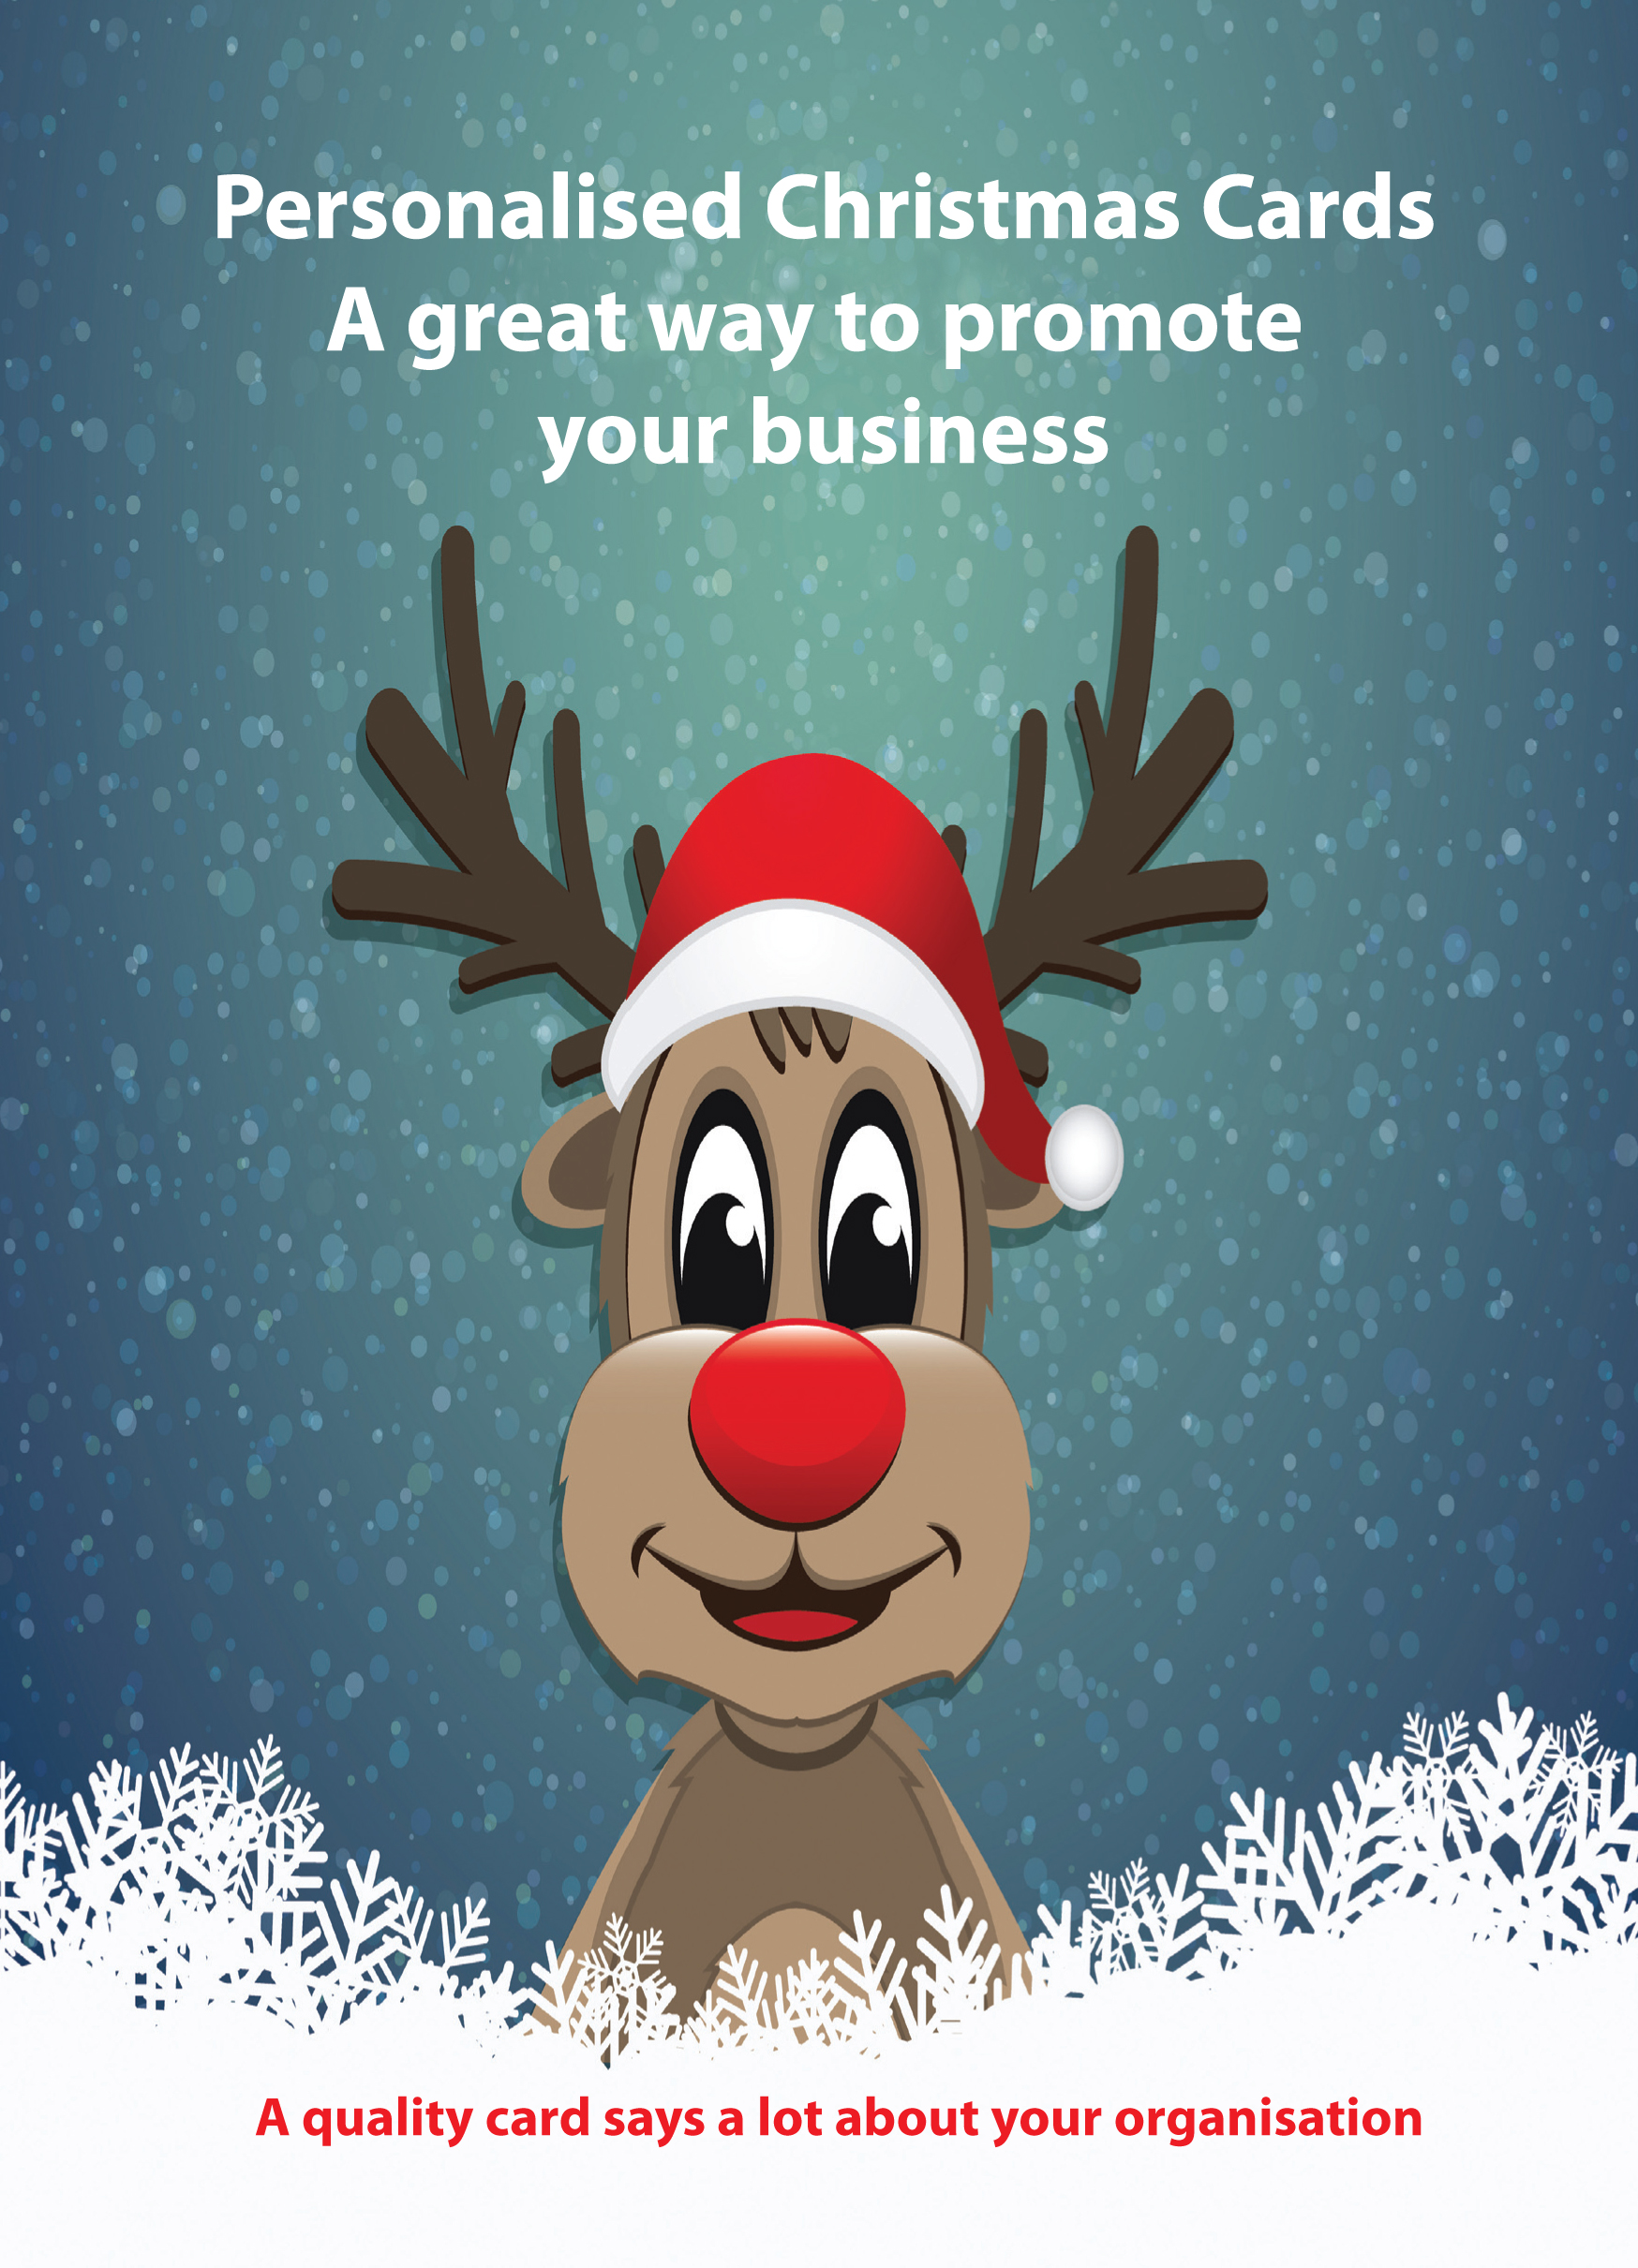 McBrinns Print Solutions - Quality Personalised Christmas Cards